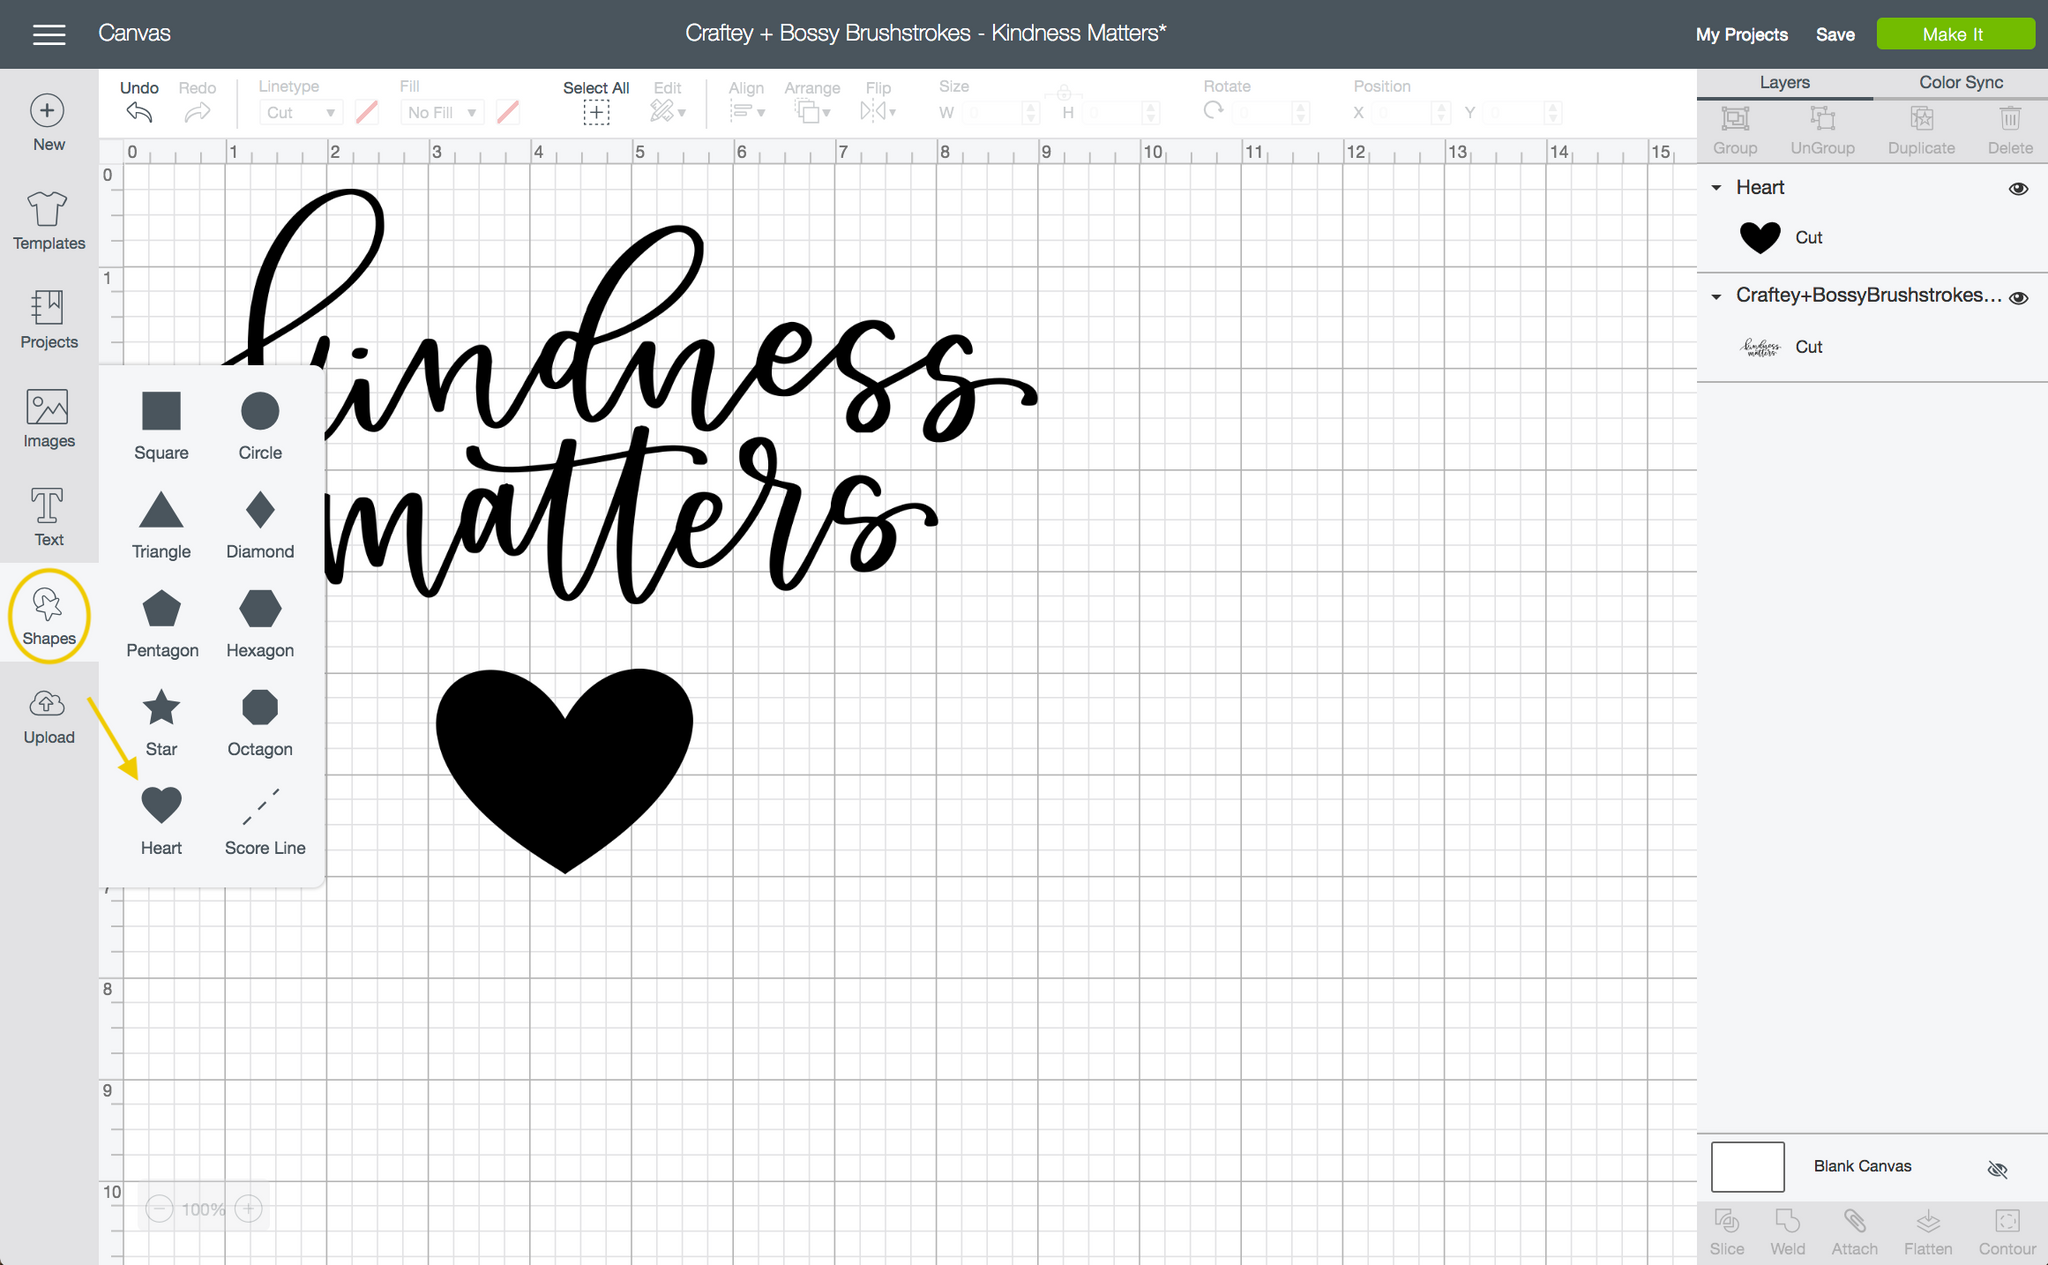 Craftey + Bossy Brushstrokes Kindness Matters Add Heart